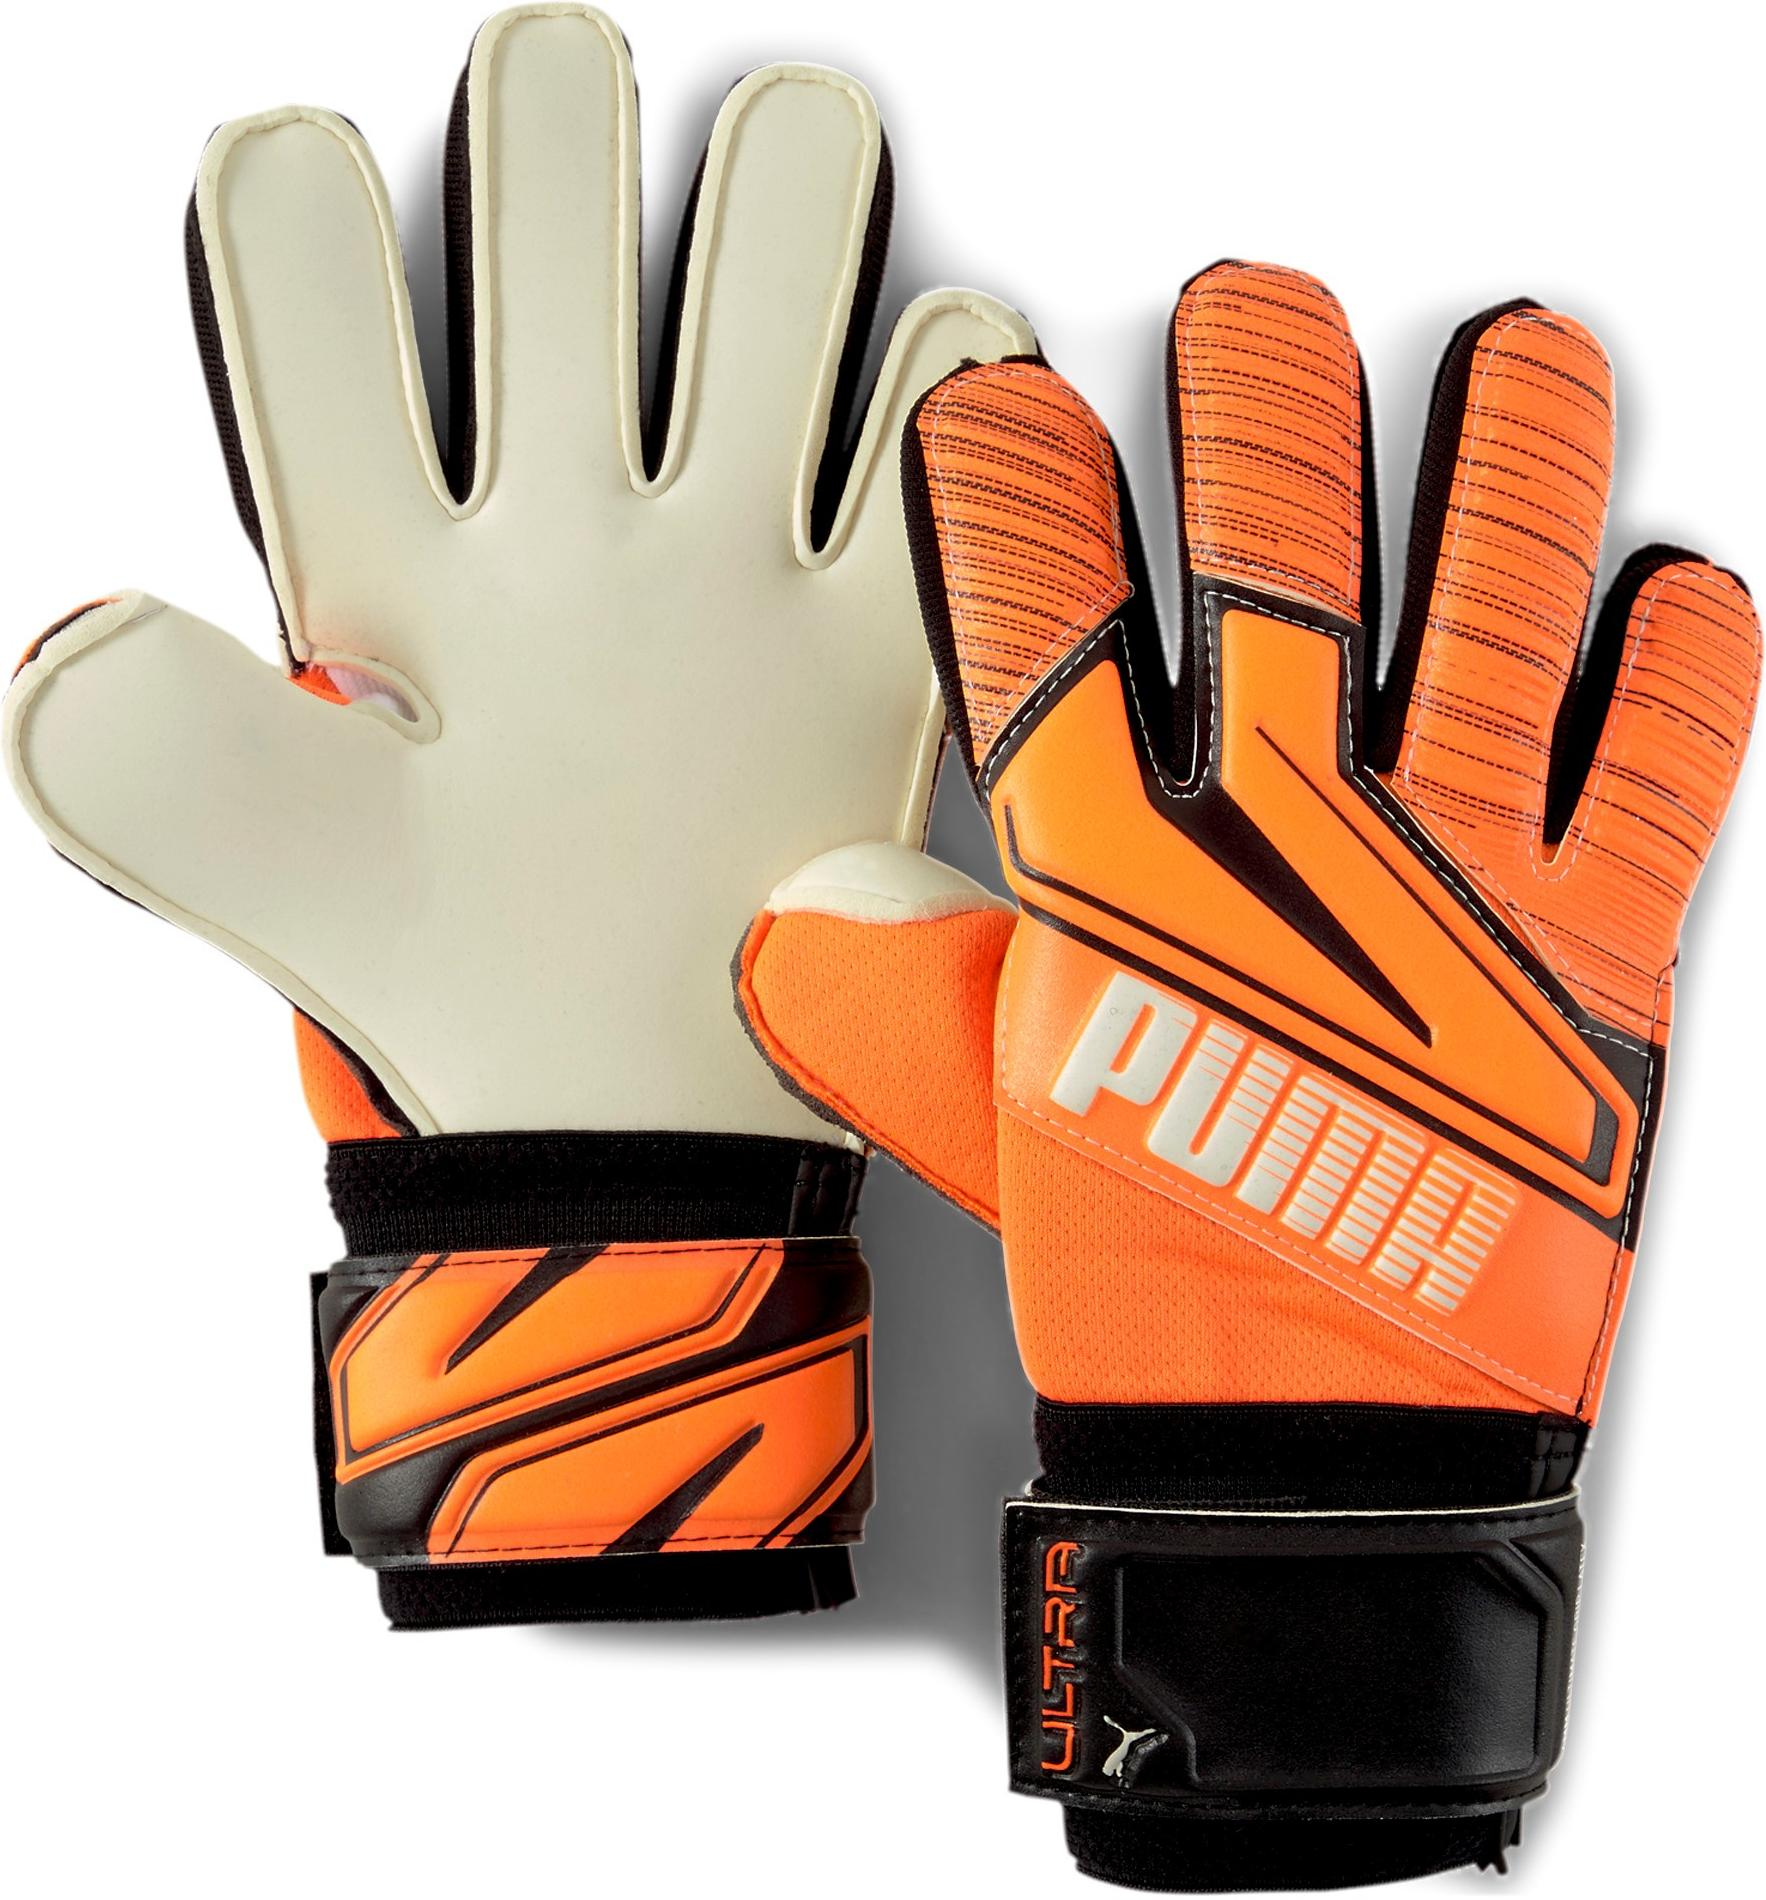 Golmanske rukavice Puma ULTRA GRIP 1 JUNIOR RC